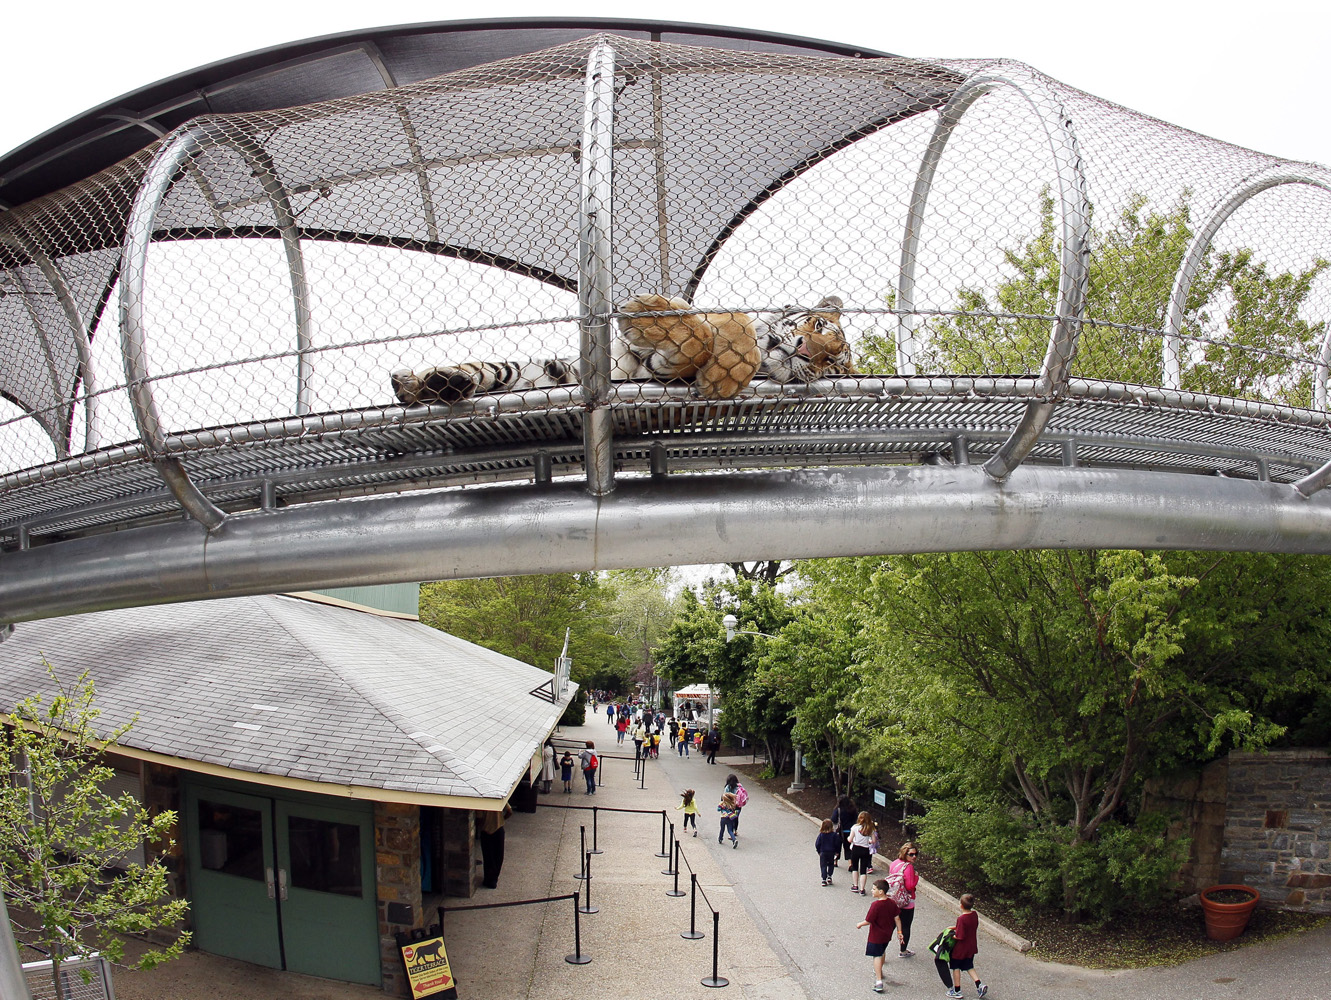 An Amur Tiger lies down to relax in the Big Cat Crossing, a mesh-engineered passageway that crosses over the main visitor path inside the Philadelphia Zoo in Philadelphia, on May 14, 2014.